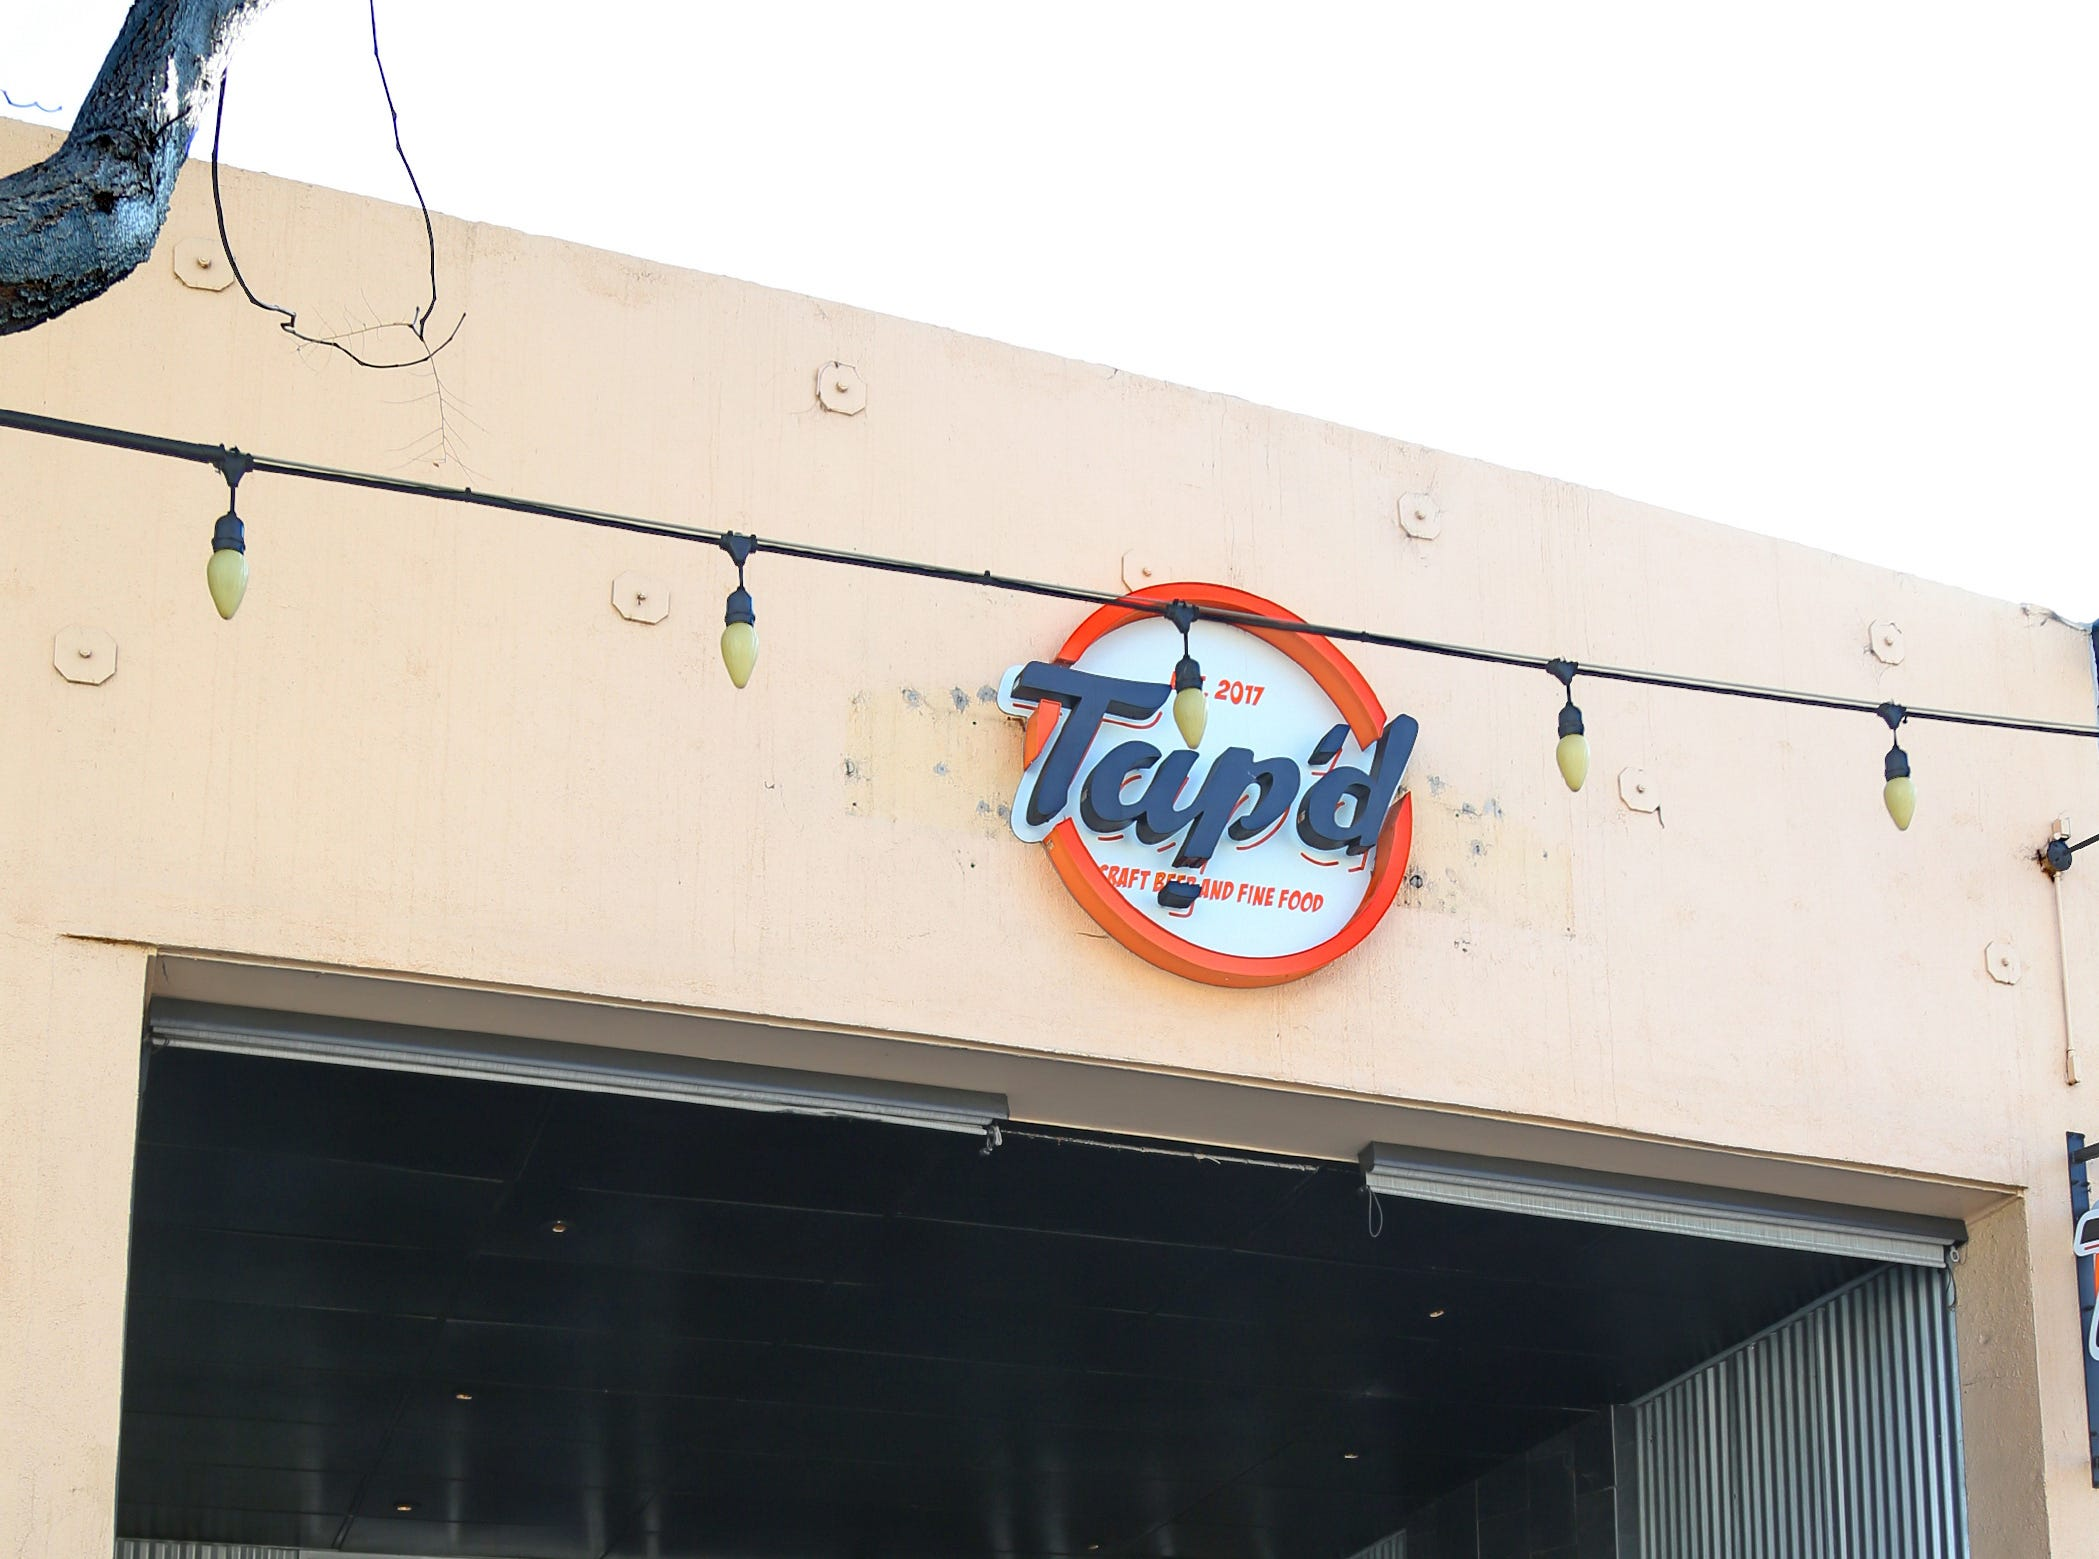 Tap'd Ventura is at 546 E. Main St. in downtown Ventura. It offers beer, wine and hard ciders and kombuchas on 43 taps, in addition to a full menu.